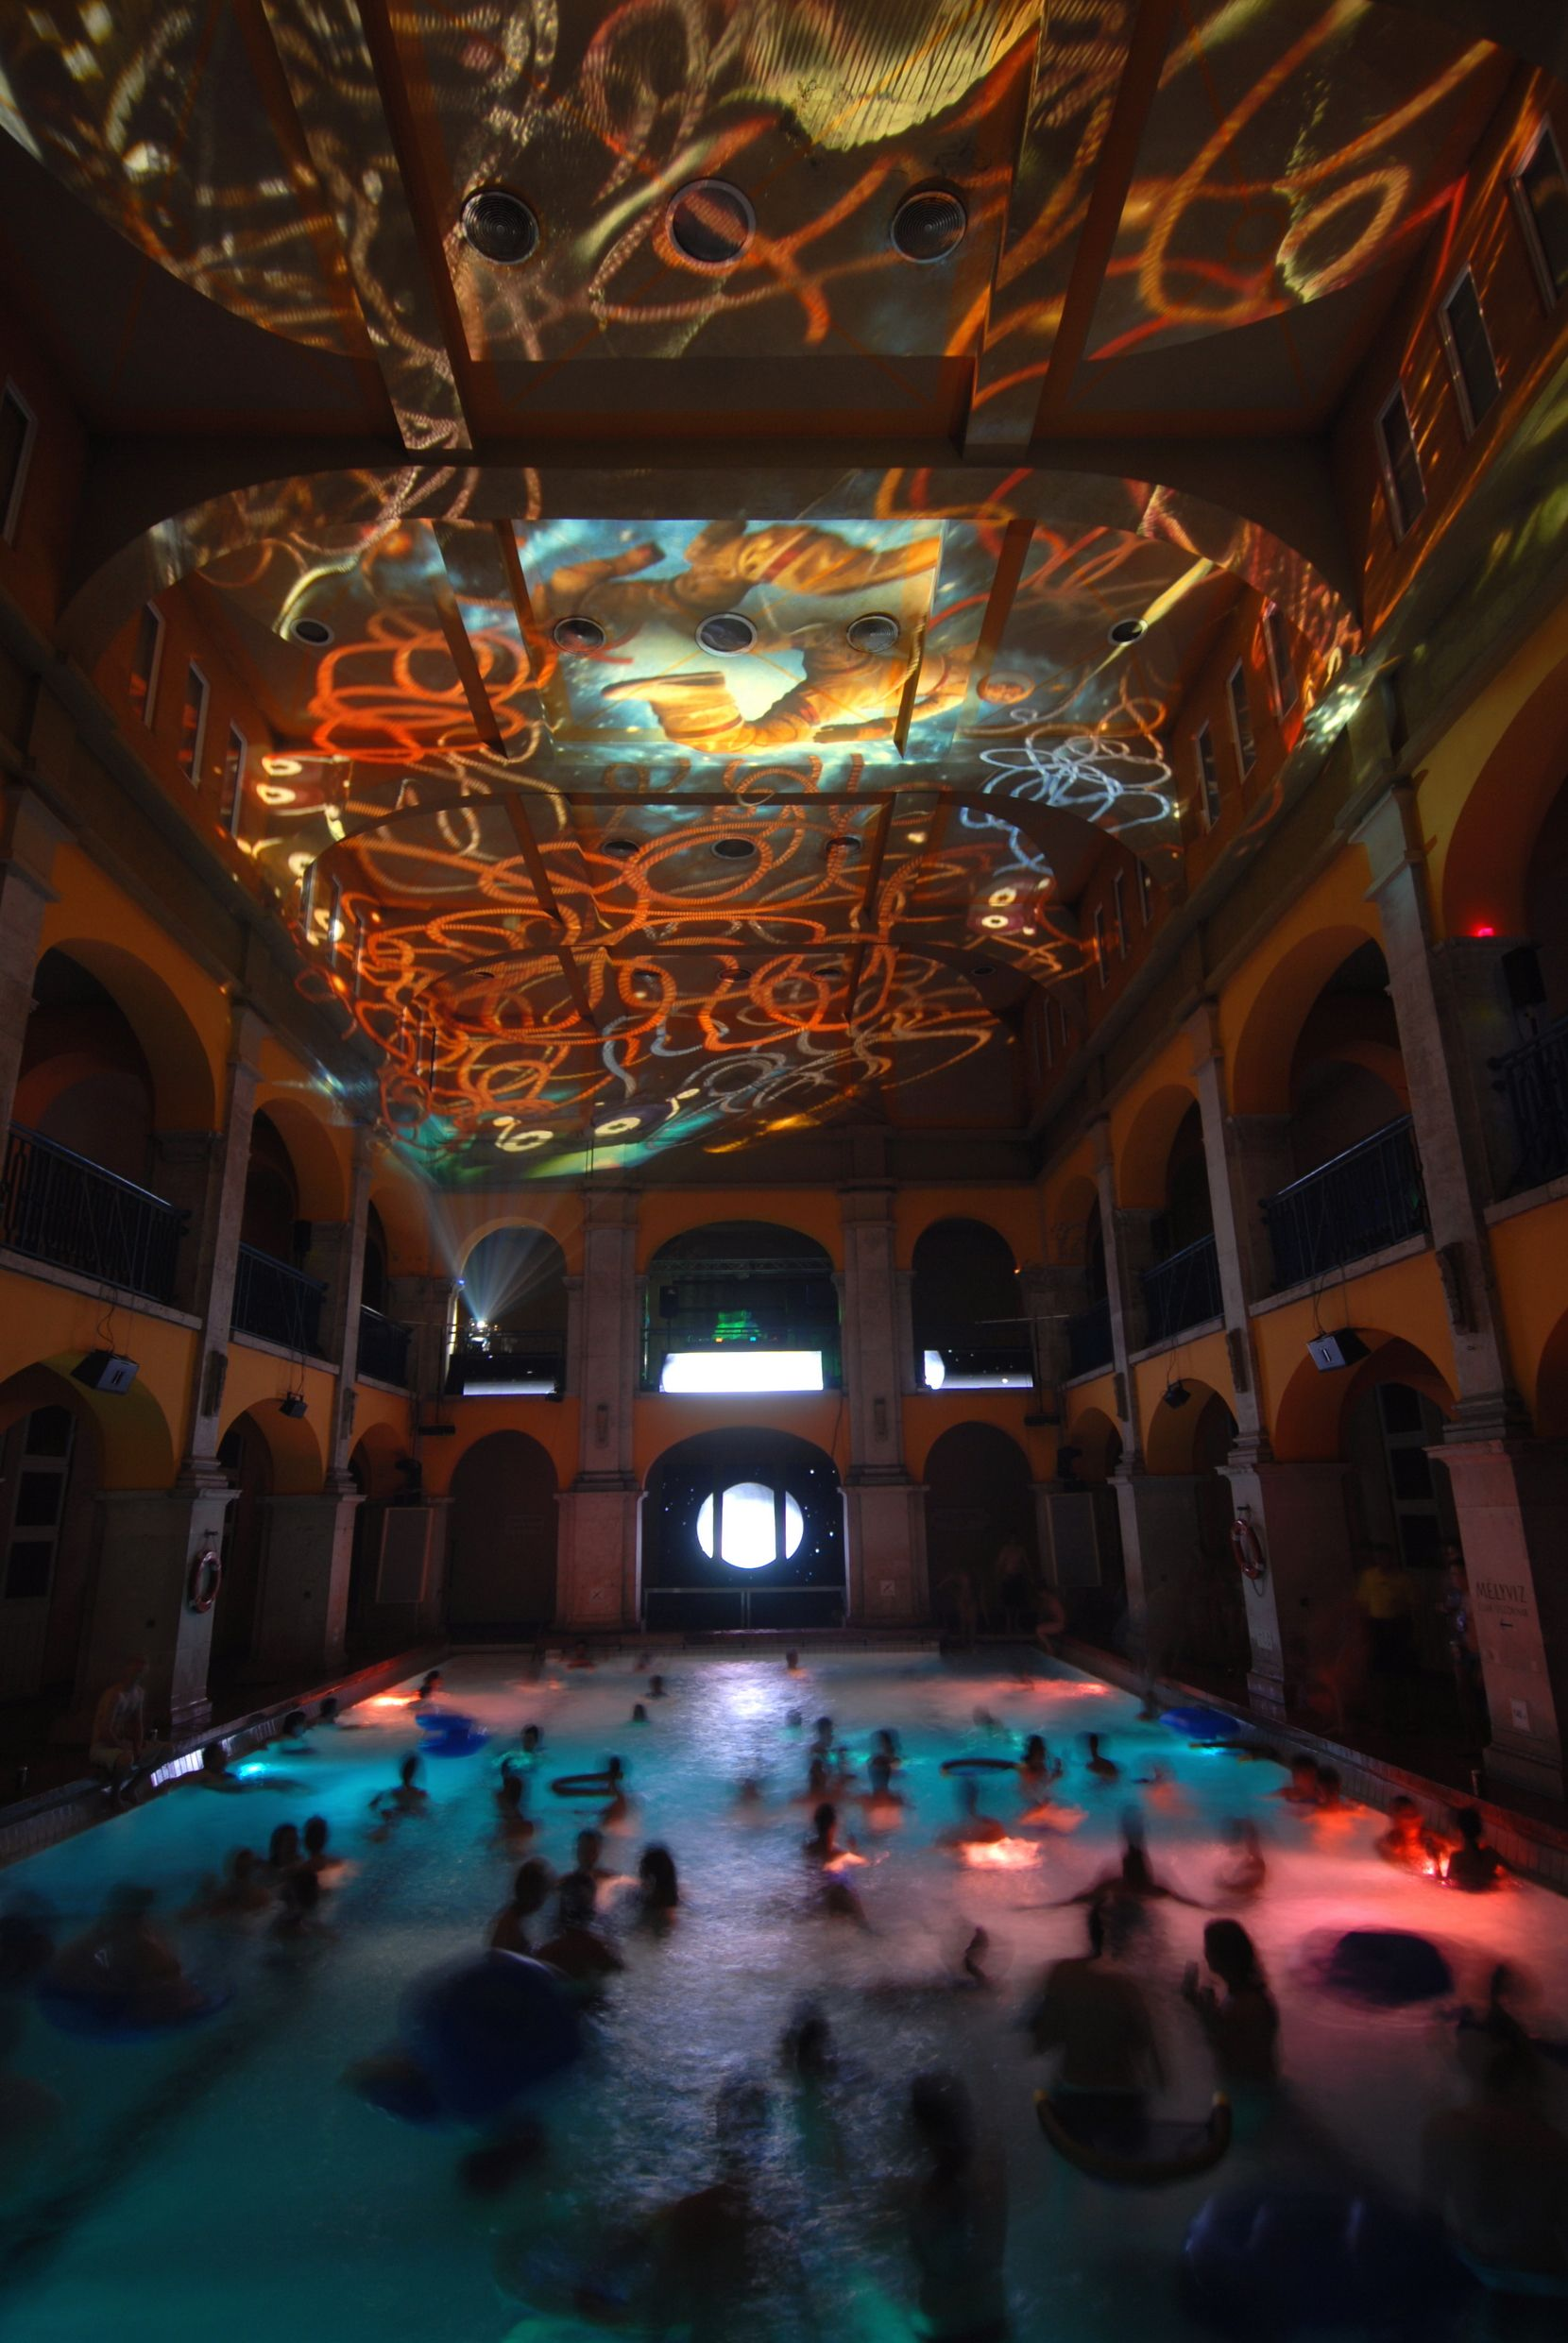 Hungary Cinetrip Thermal Bath Sparty See The World Pinterest - The 5 best thermal baths in budapest